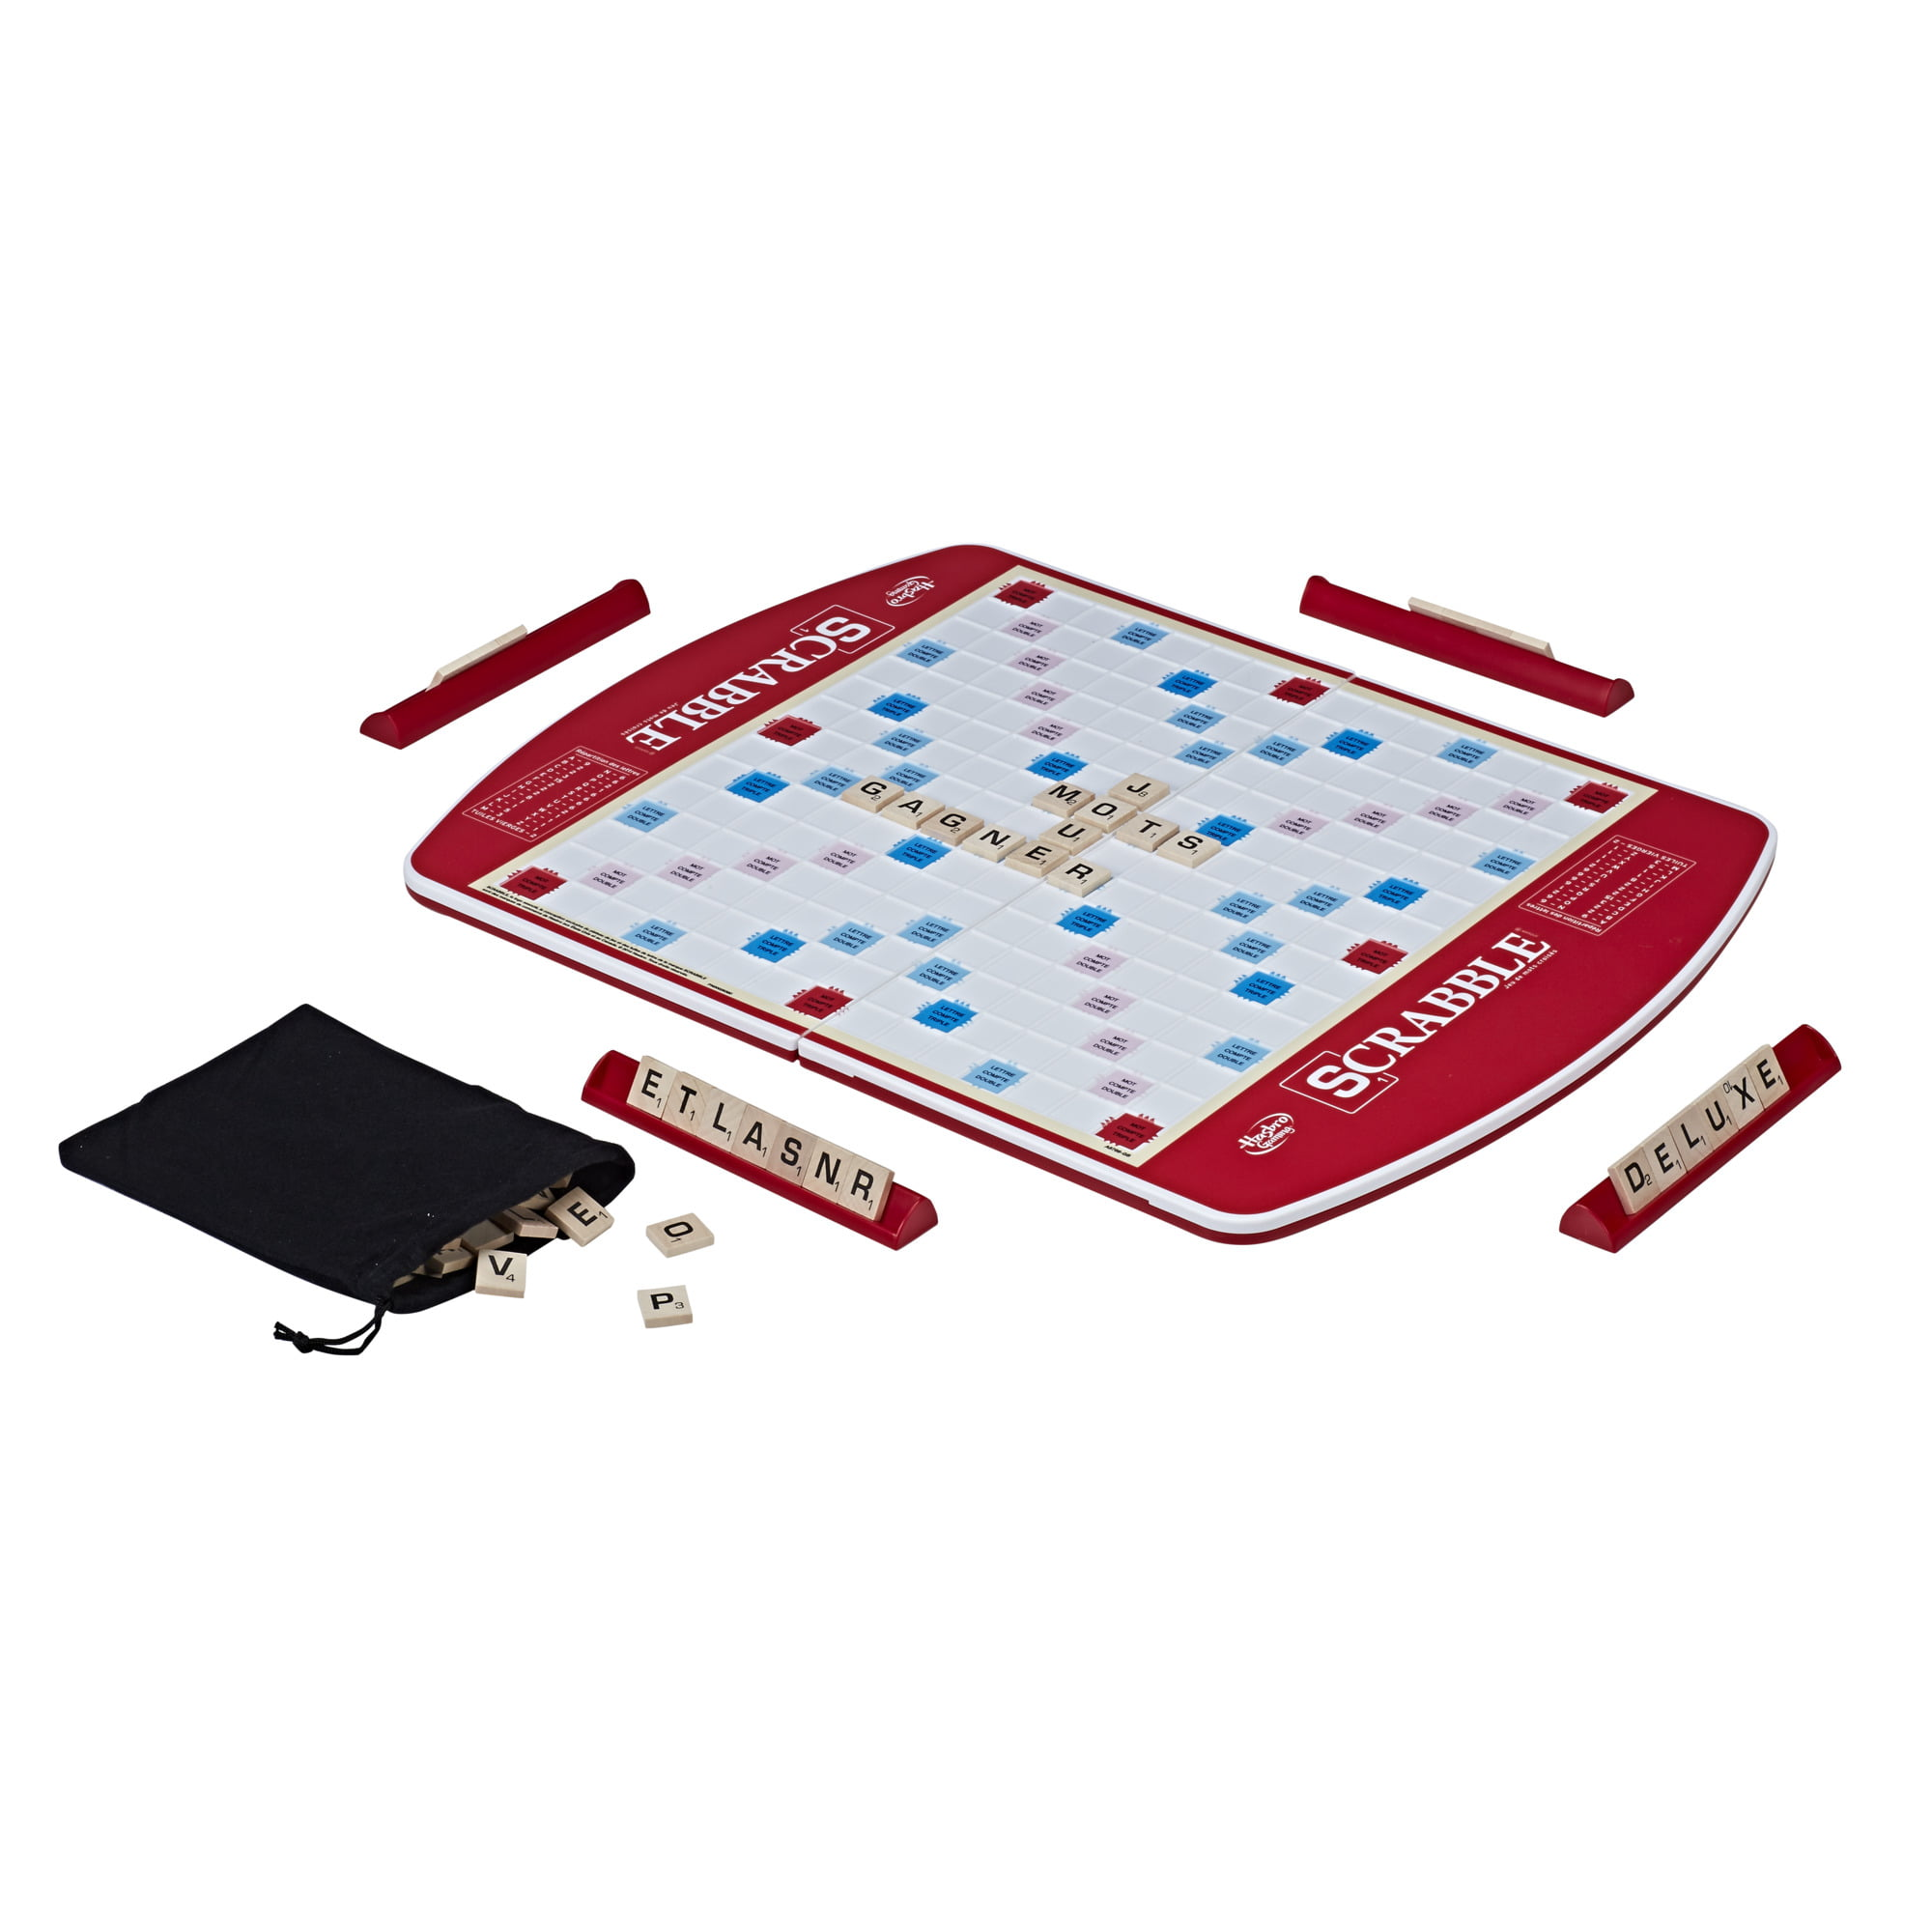 Scrabble Deluxe Edition Game For Kids Ages 8 And Up Walmart Com Walmart Com